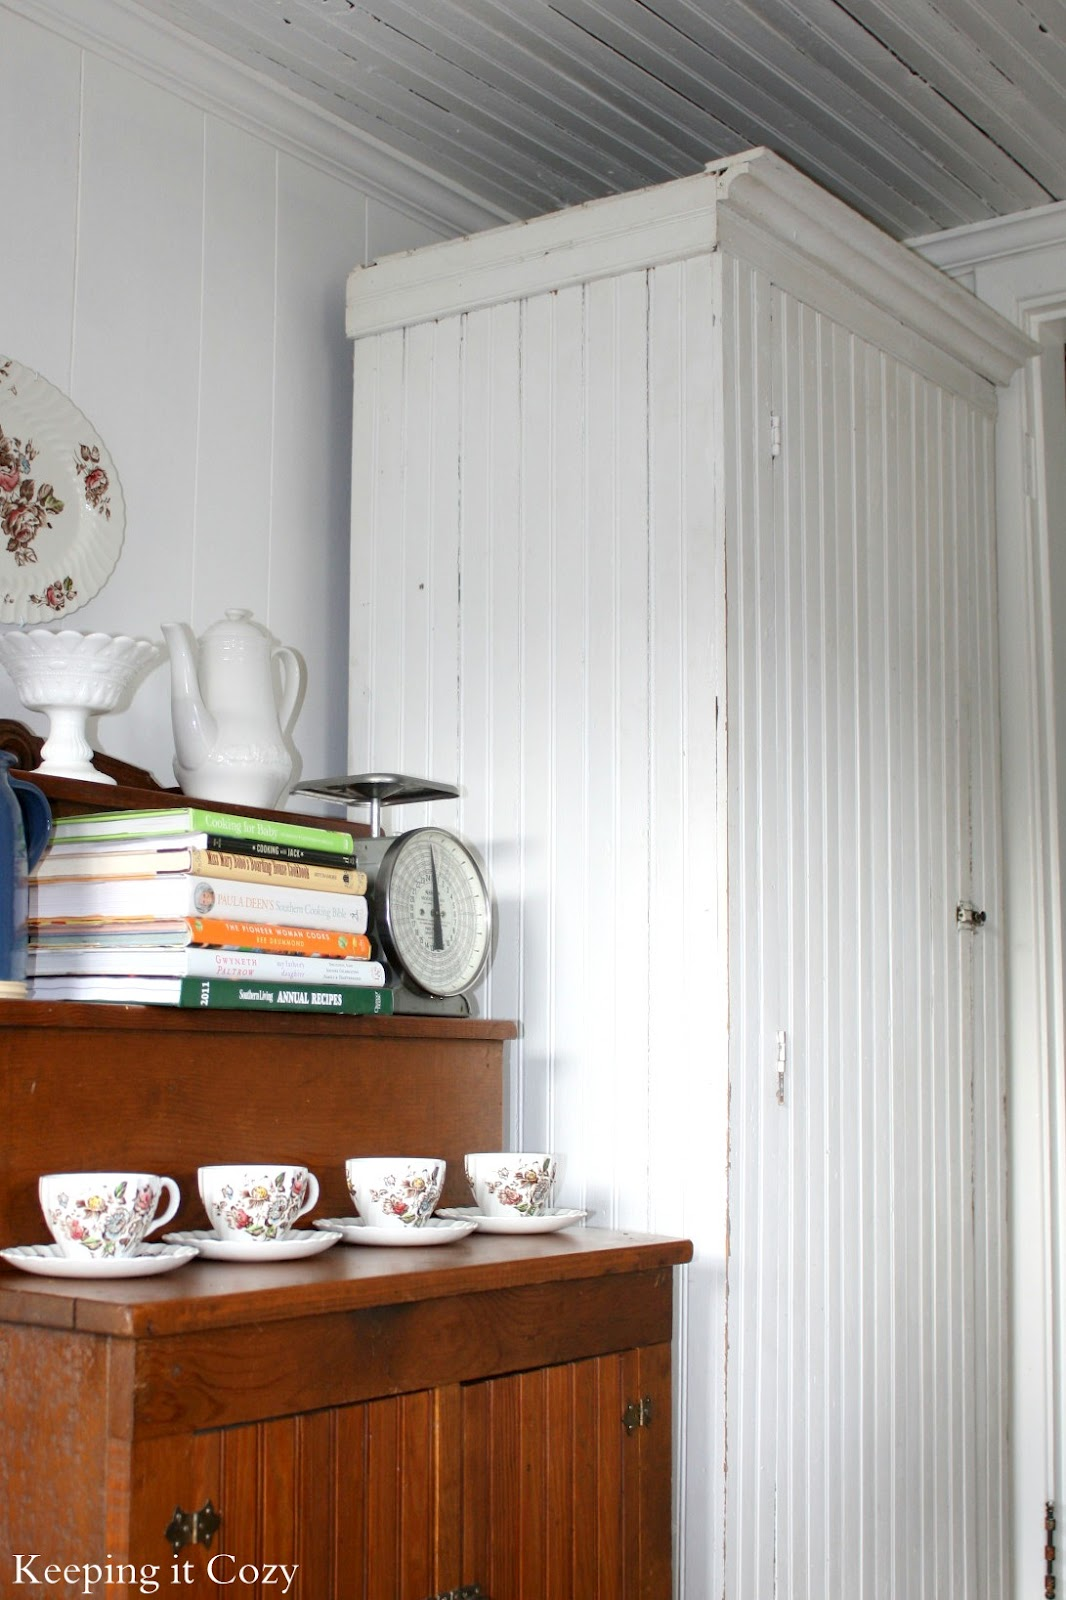 Deens Design Vintage Bank.Keeping It Cozy The Story Of A Country Kitchen